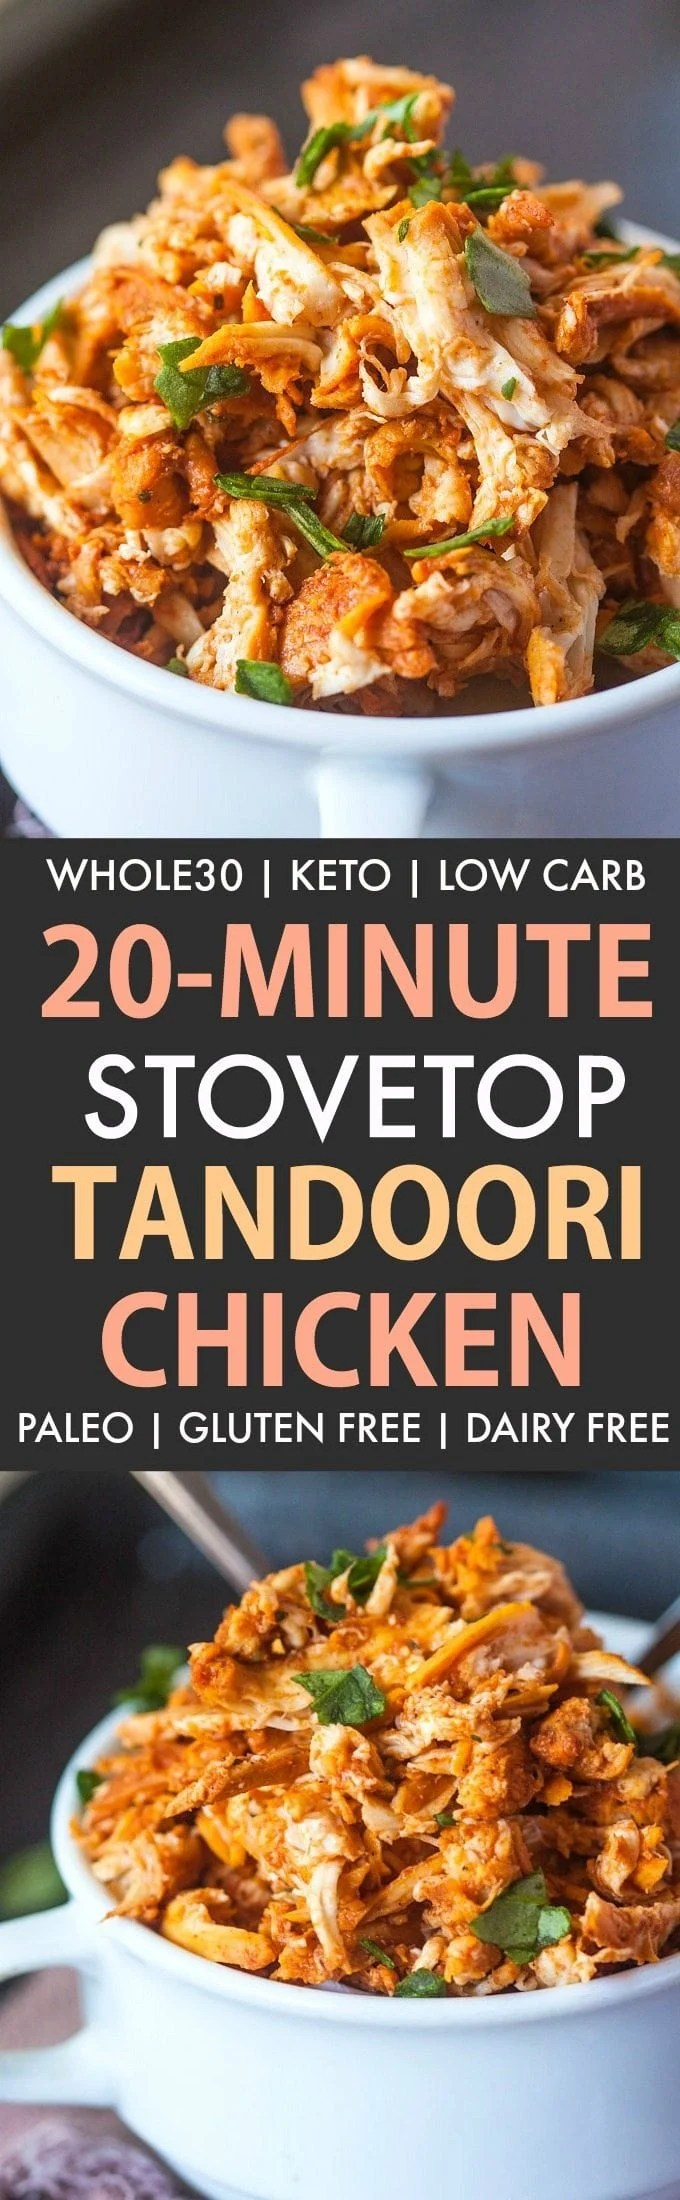 20 Minute Stovetop Pulled Tandoori Chicken (Whole30, Keto, Paleo, Gluten Free)- Easy low carb chicken recipe which is whole30 approved and keto friendly- Instant pot and crockpot ready too! #instantpot #whole30 #keto #whole30approved   Recipe on thebigmansworld.com